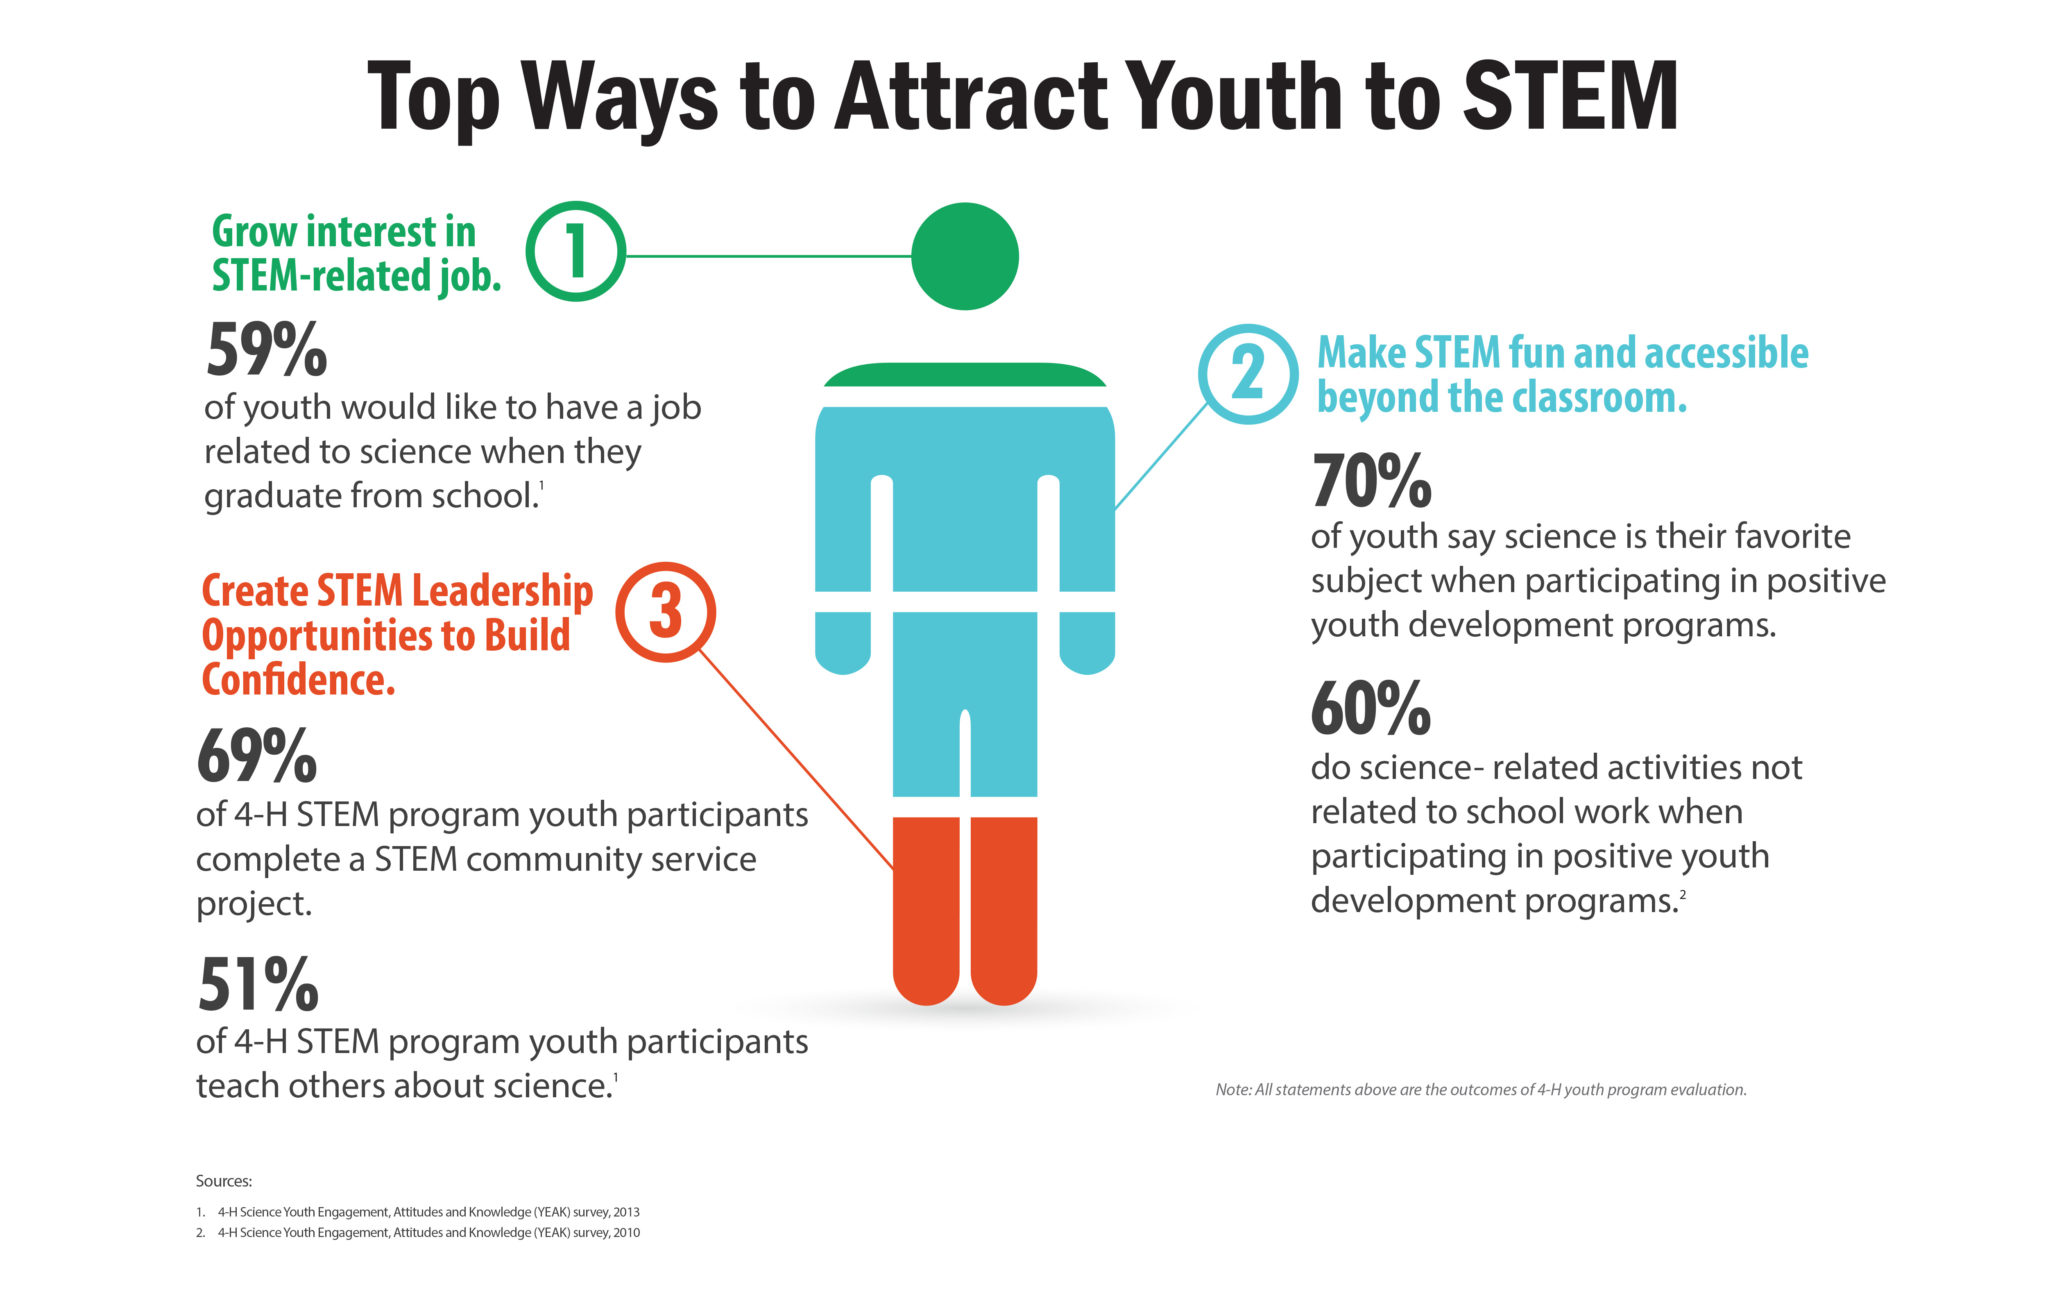 Youth Development Research